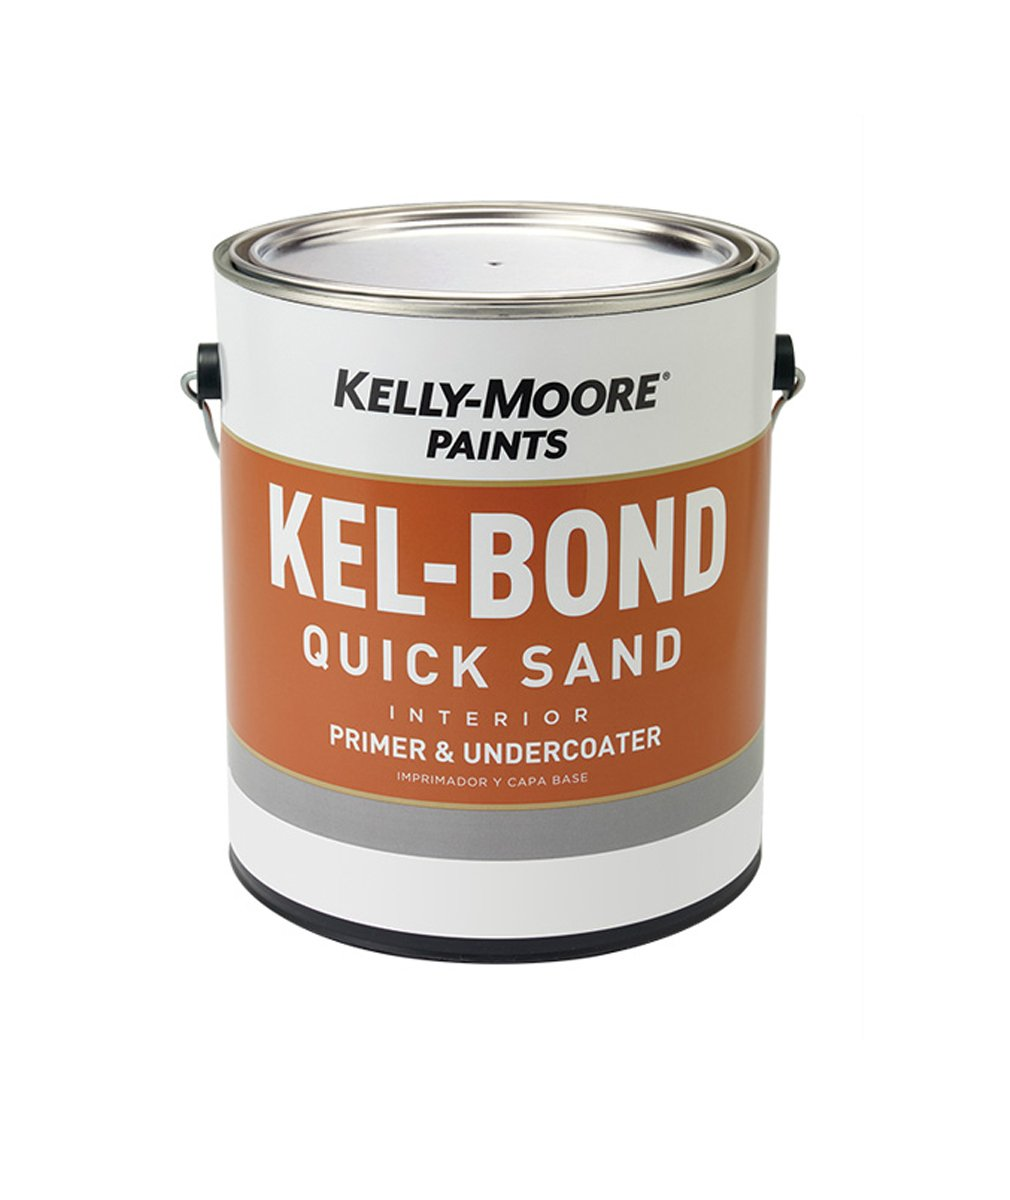 Kel-Bond Quick Sand Primer, available at Kelly-Moore Paints for Contractors.